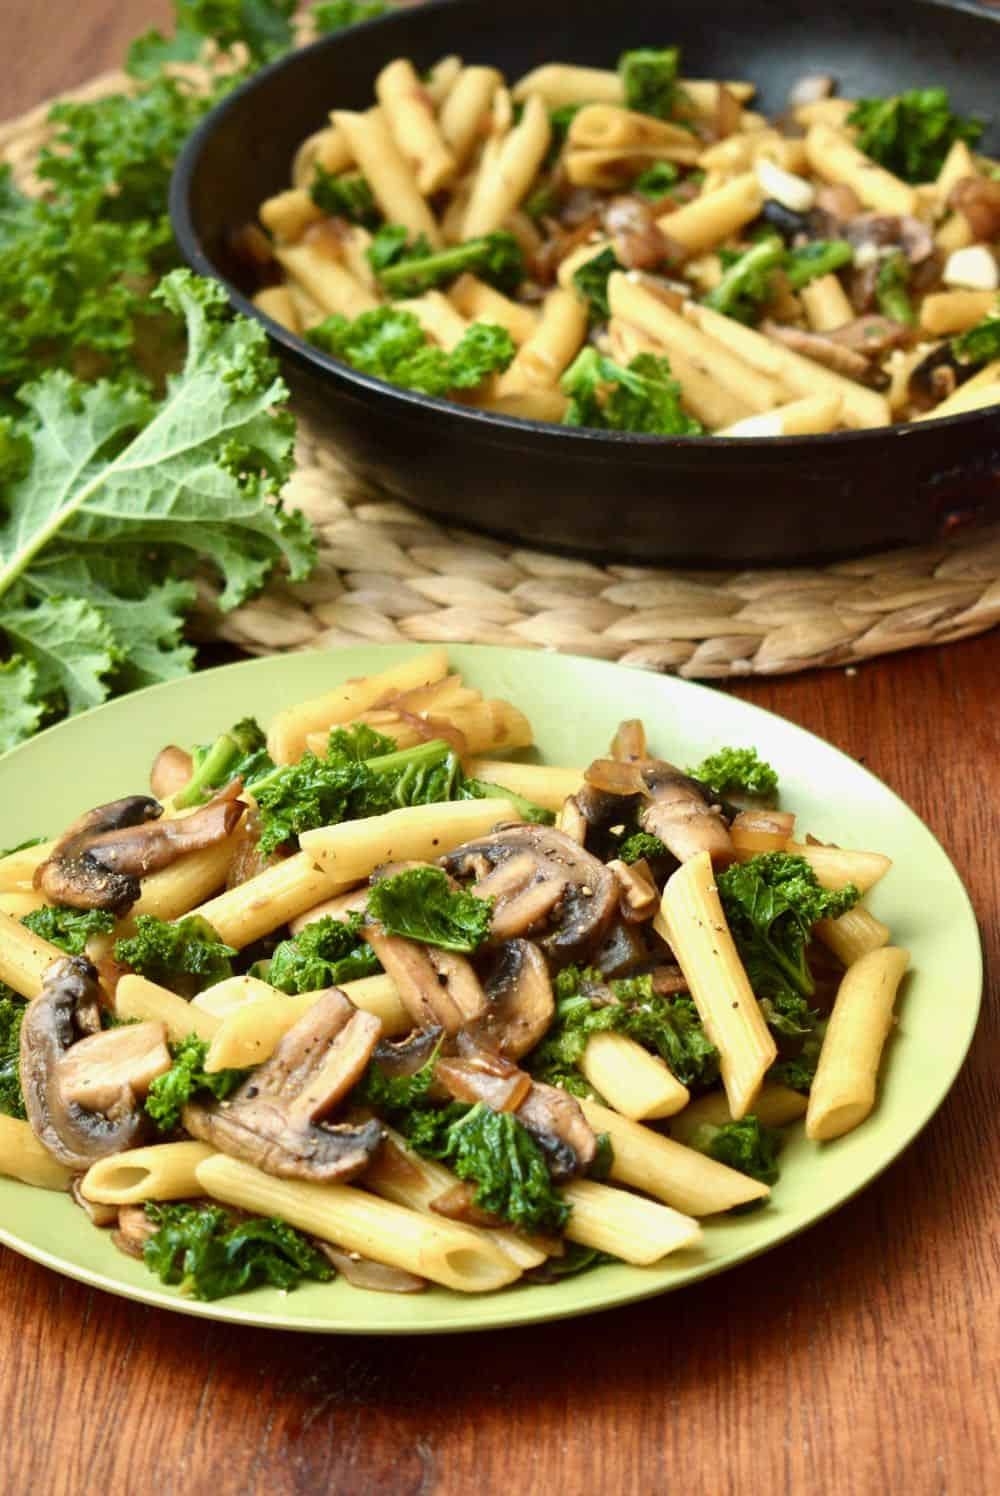 A plate of pasta with mushrooms and stirfried kale